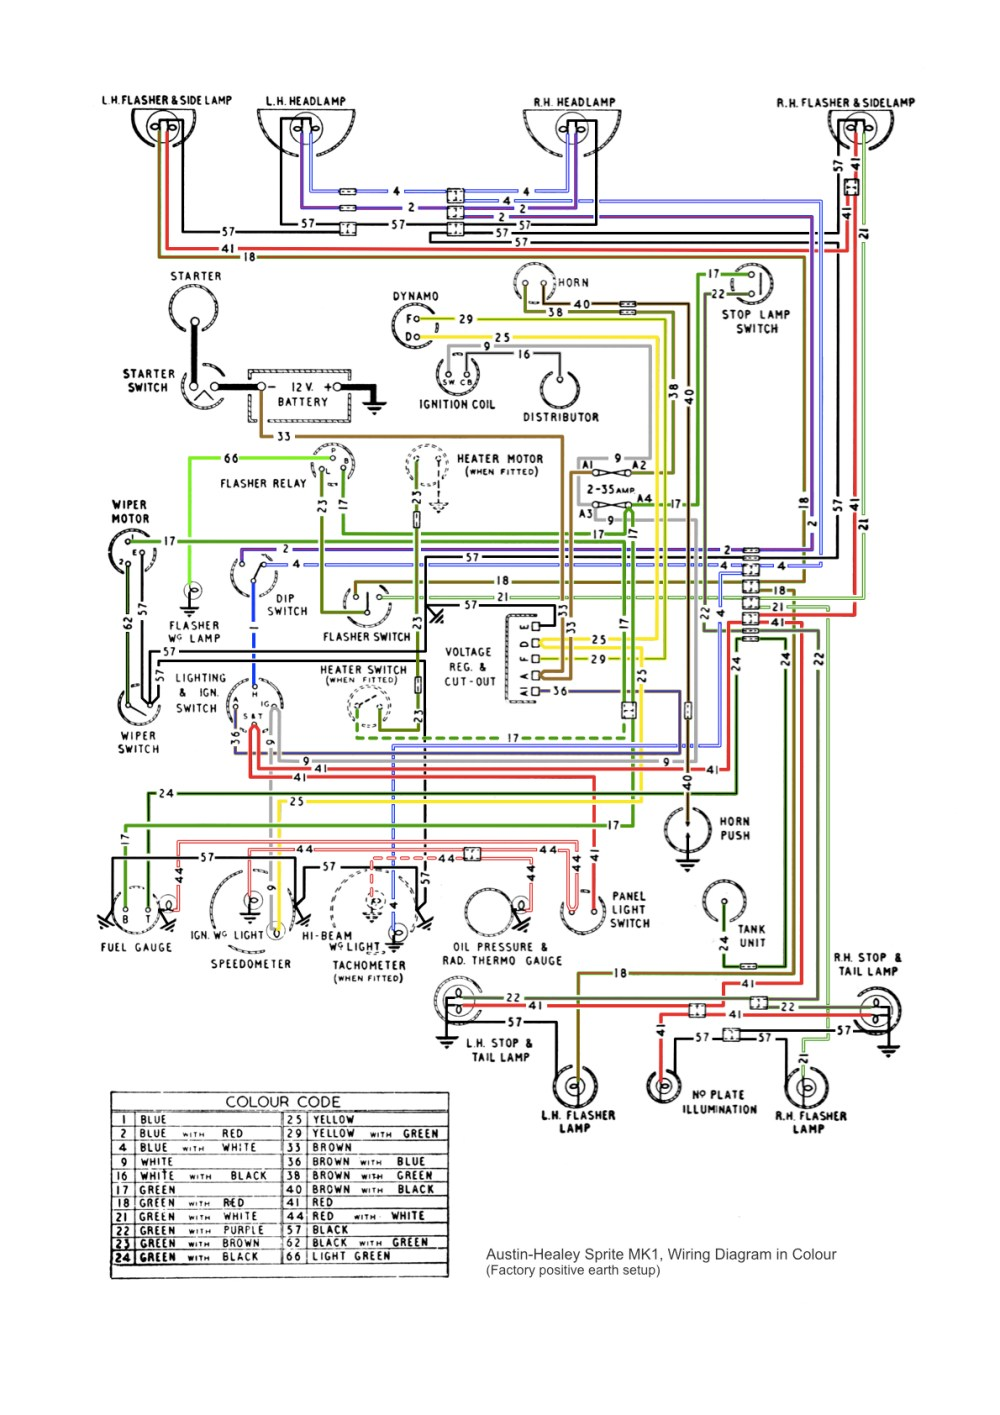 medium resolution of austin healey bugeye sprite wiring diagram